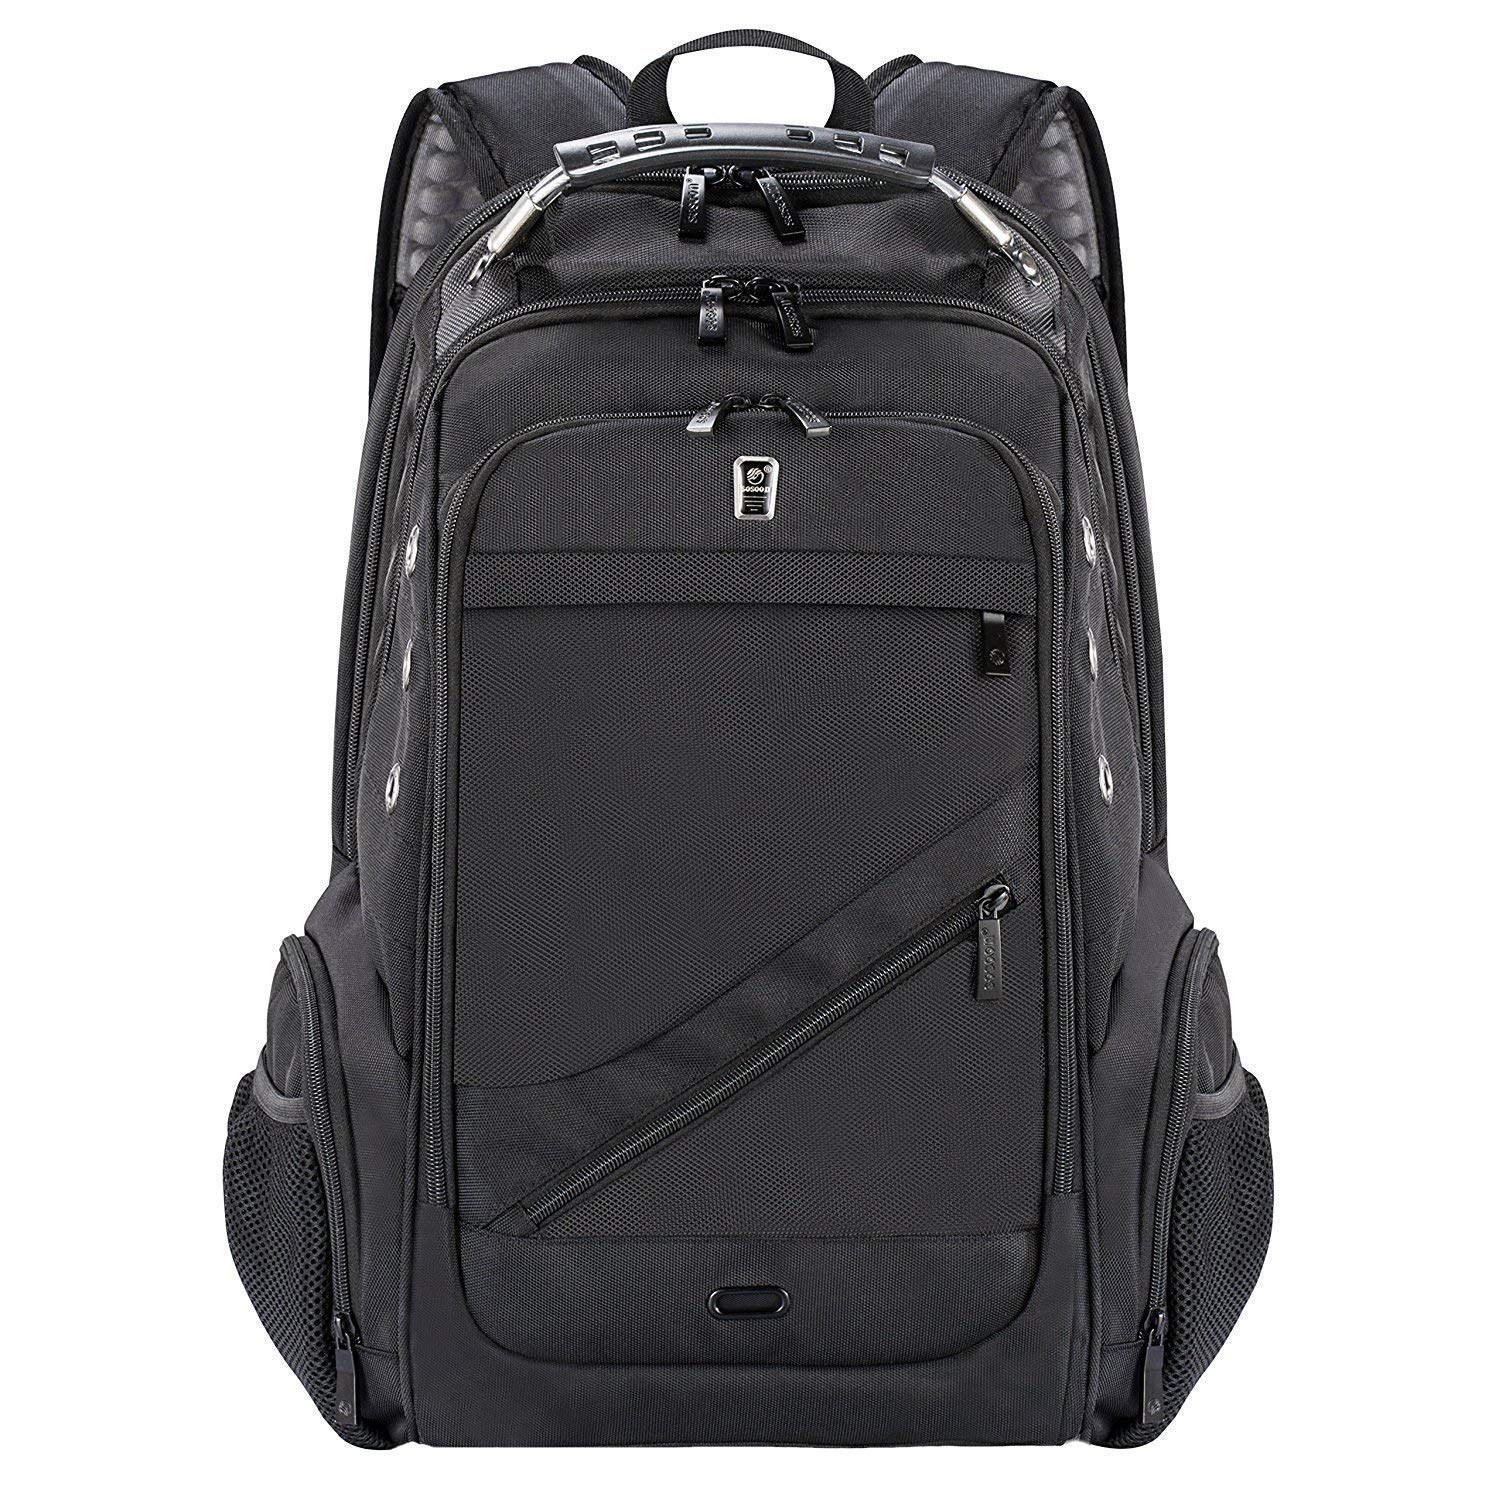 Laptop Backpack, Business Anti-Theft Travel Backpack with USB Charging Headphone Port, Water Resistant Large Compartment College School Computer Bag (Black)